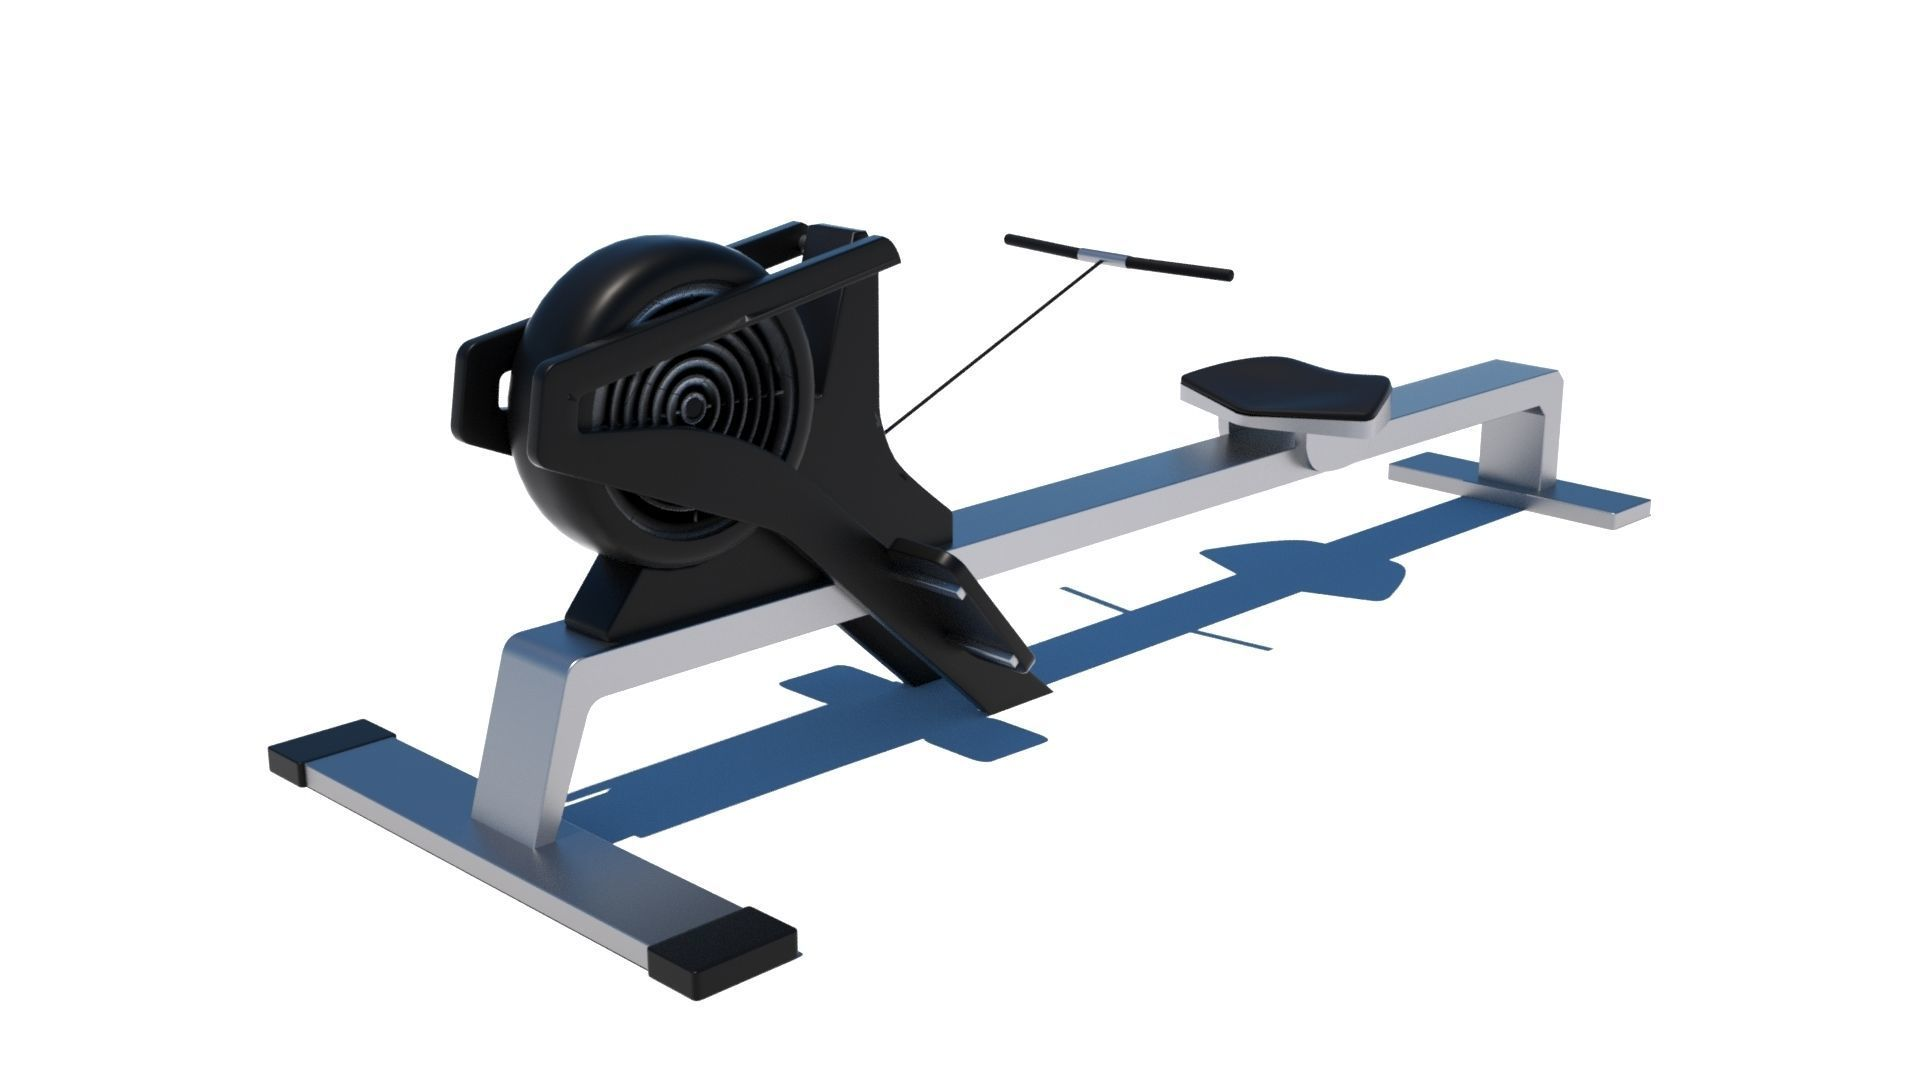 Gym Rowing Machine - Octane and Mental Ray